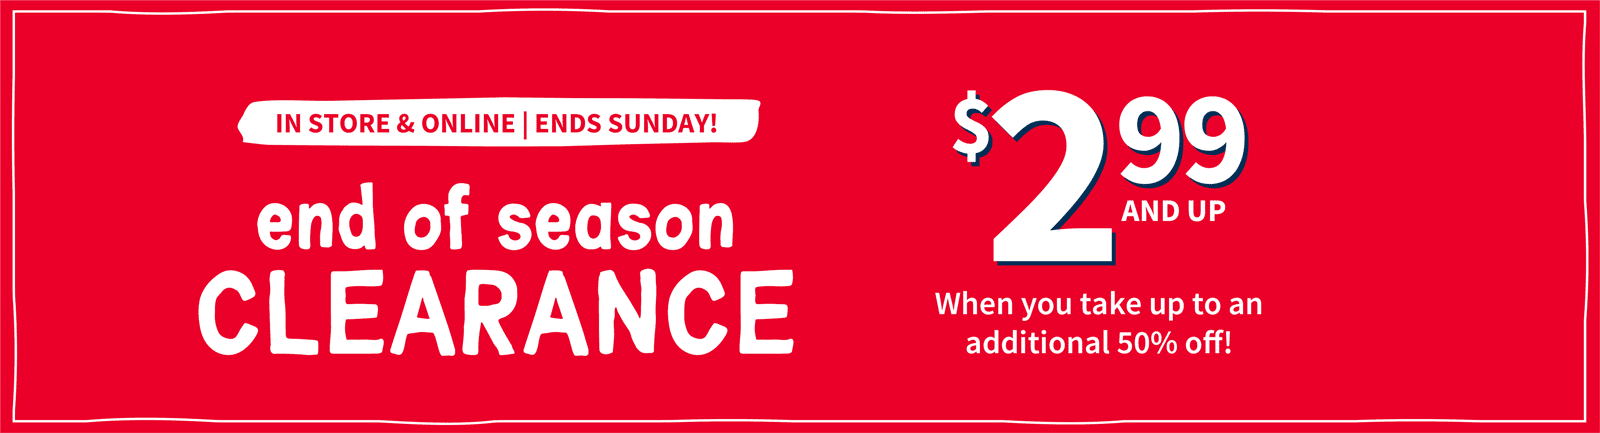 IN STORE & ONLINE | ENDS SUNDAY! | end of season CLEARANCE | $2.99 AND UP | When you take up to an additional 50% off!